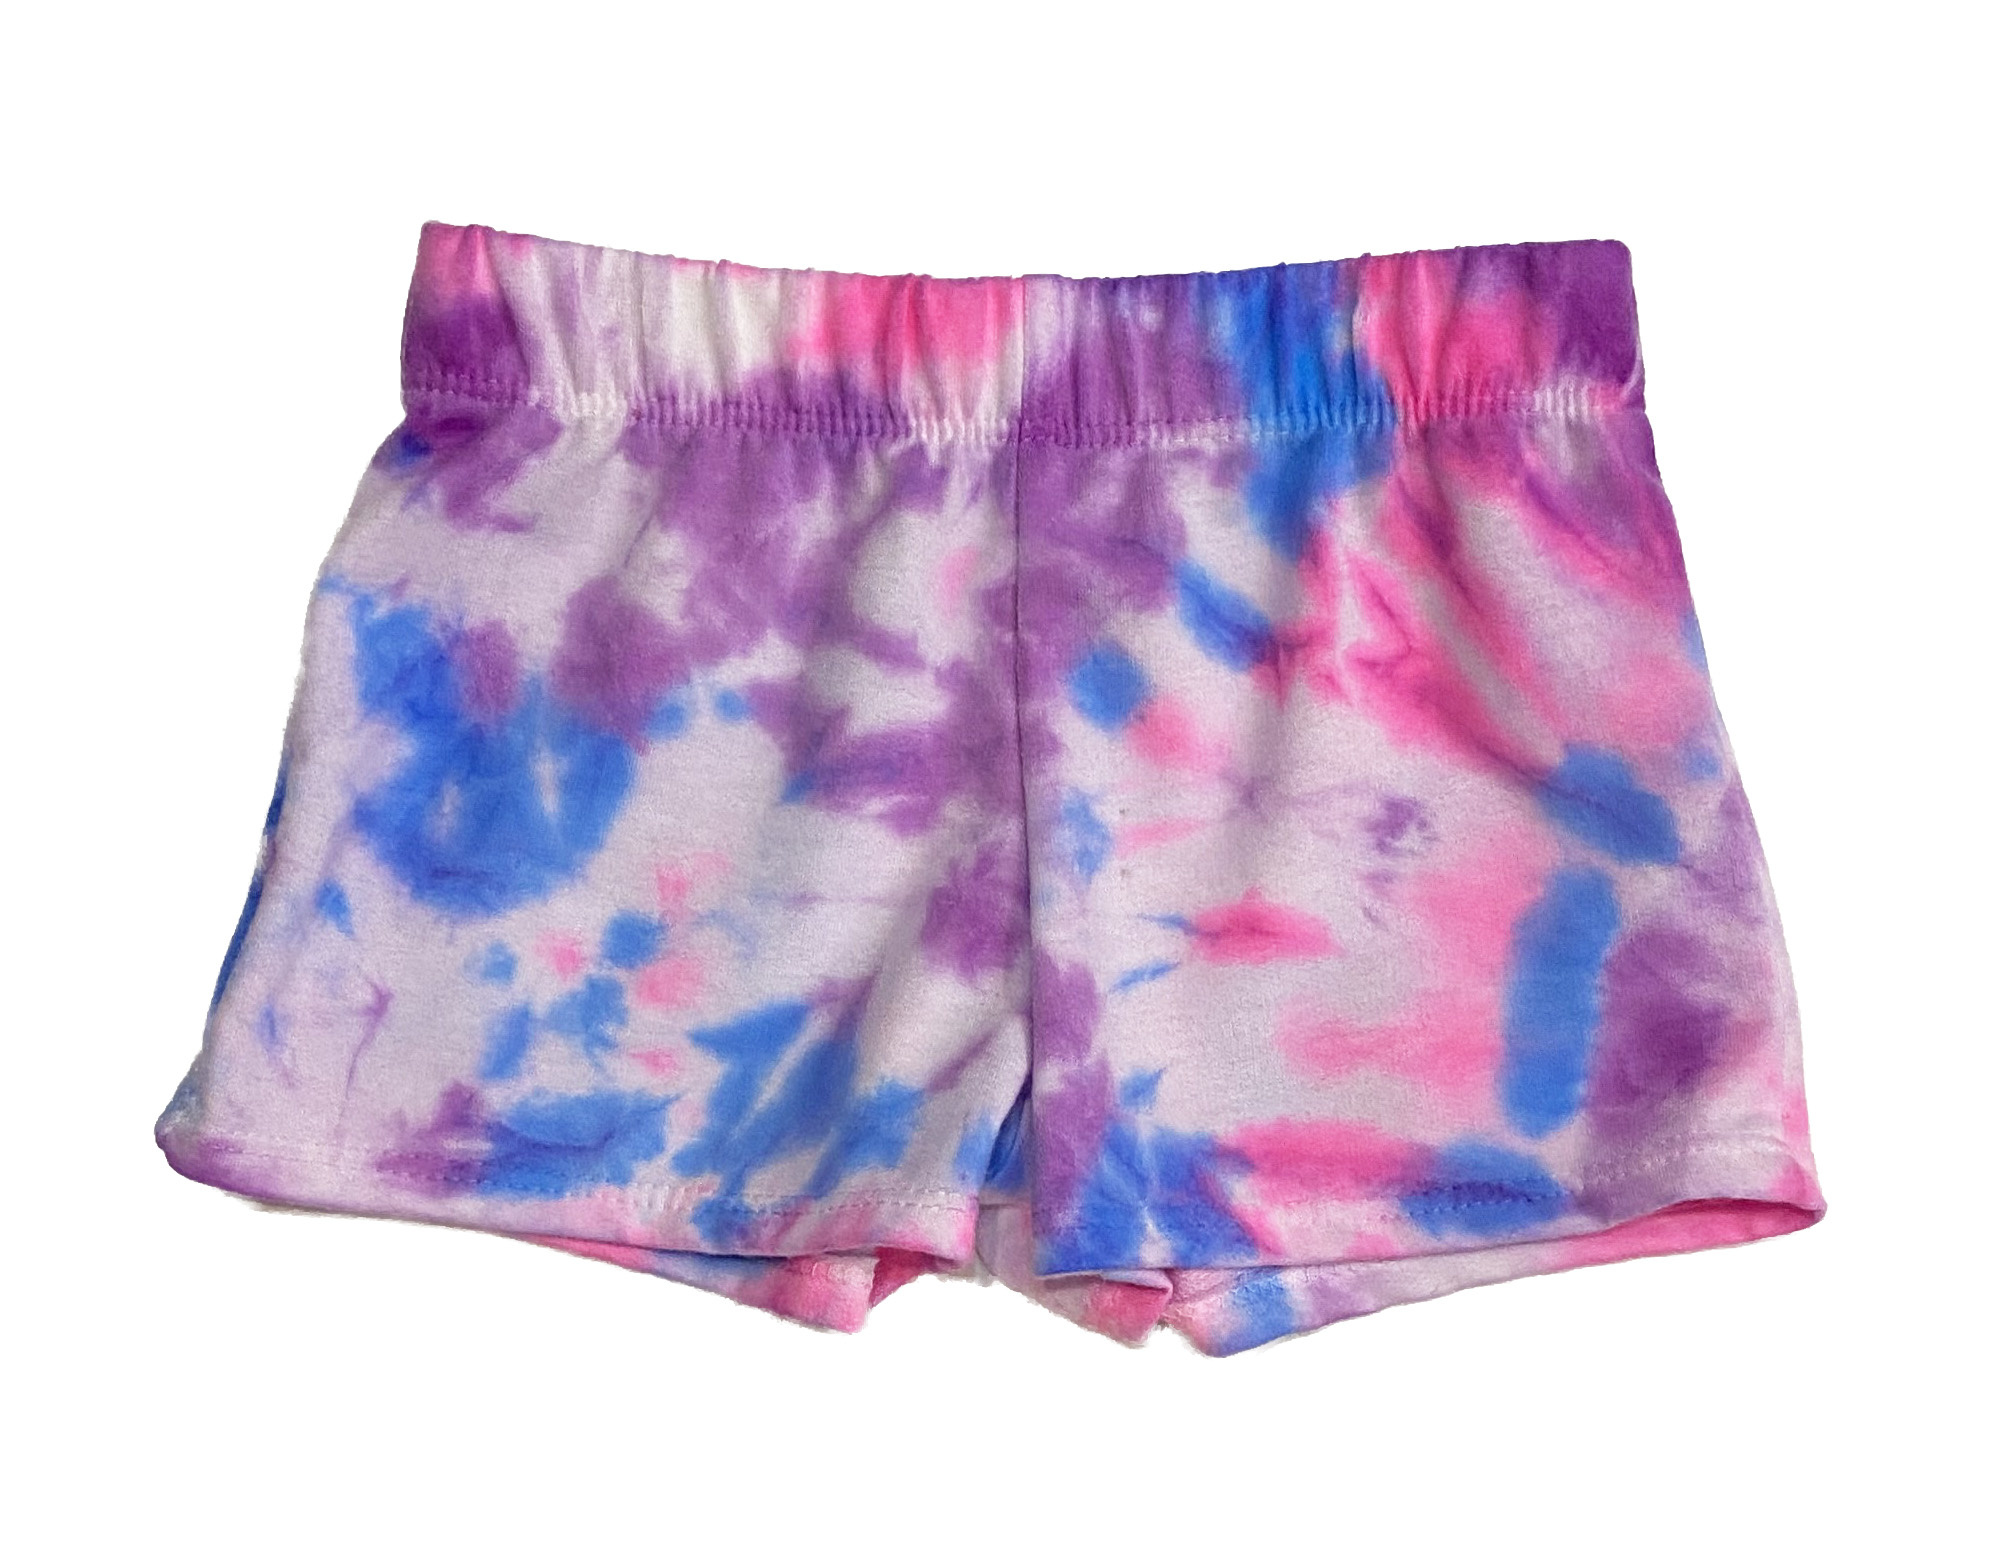 Firehouse New Neon Tie Dye Shorts